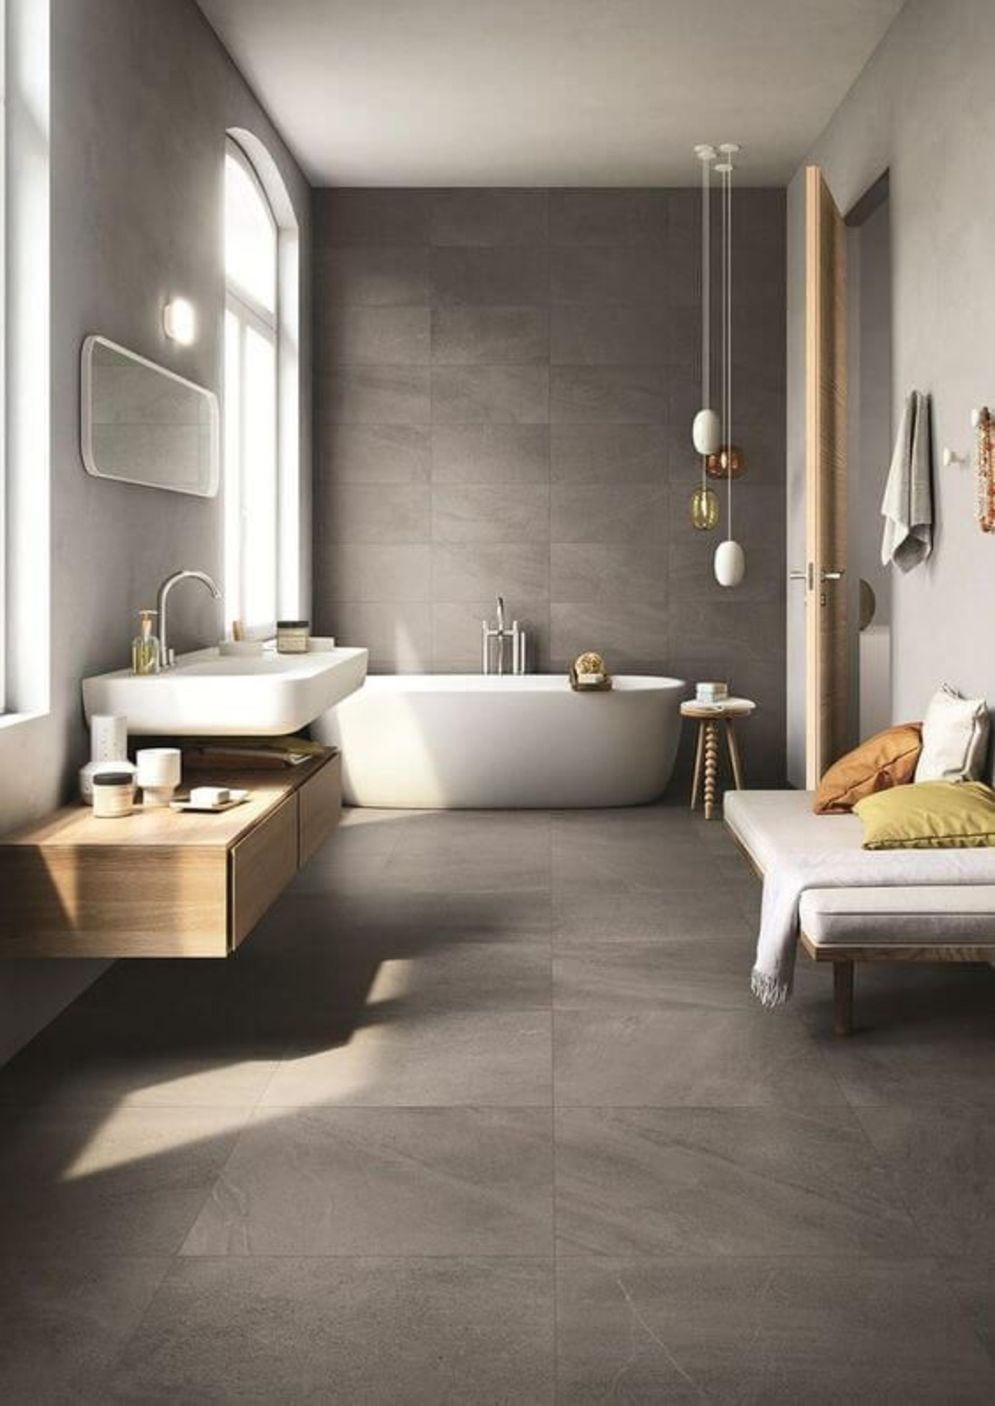 Timeless bathroom designs with wood accents enhancing more natural vibes Image 30